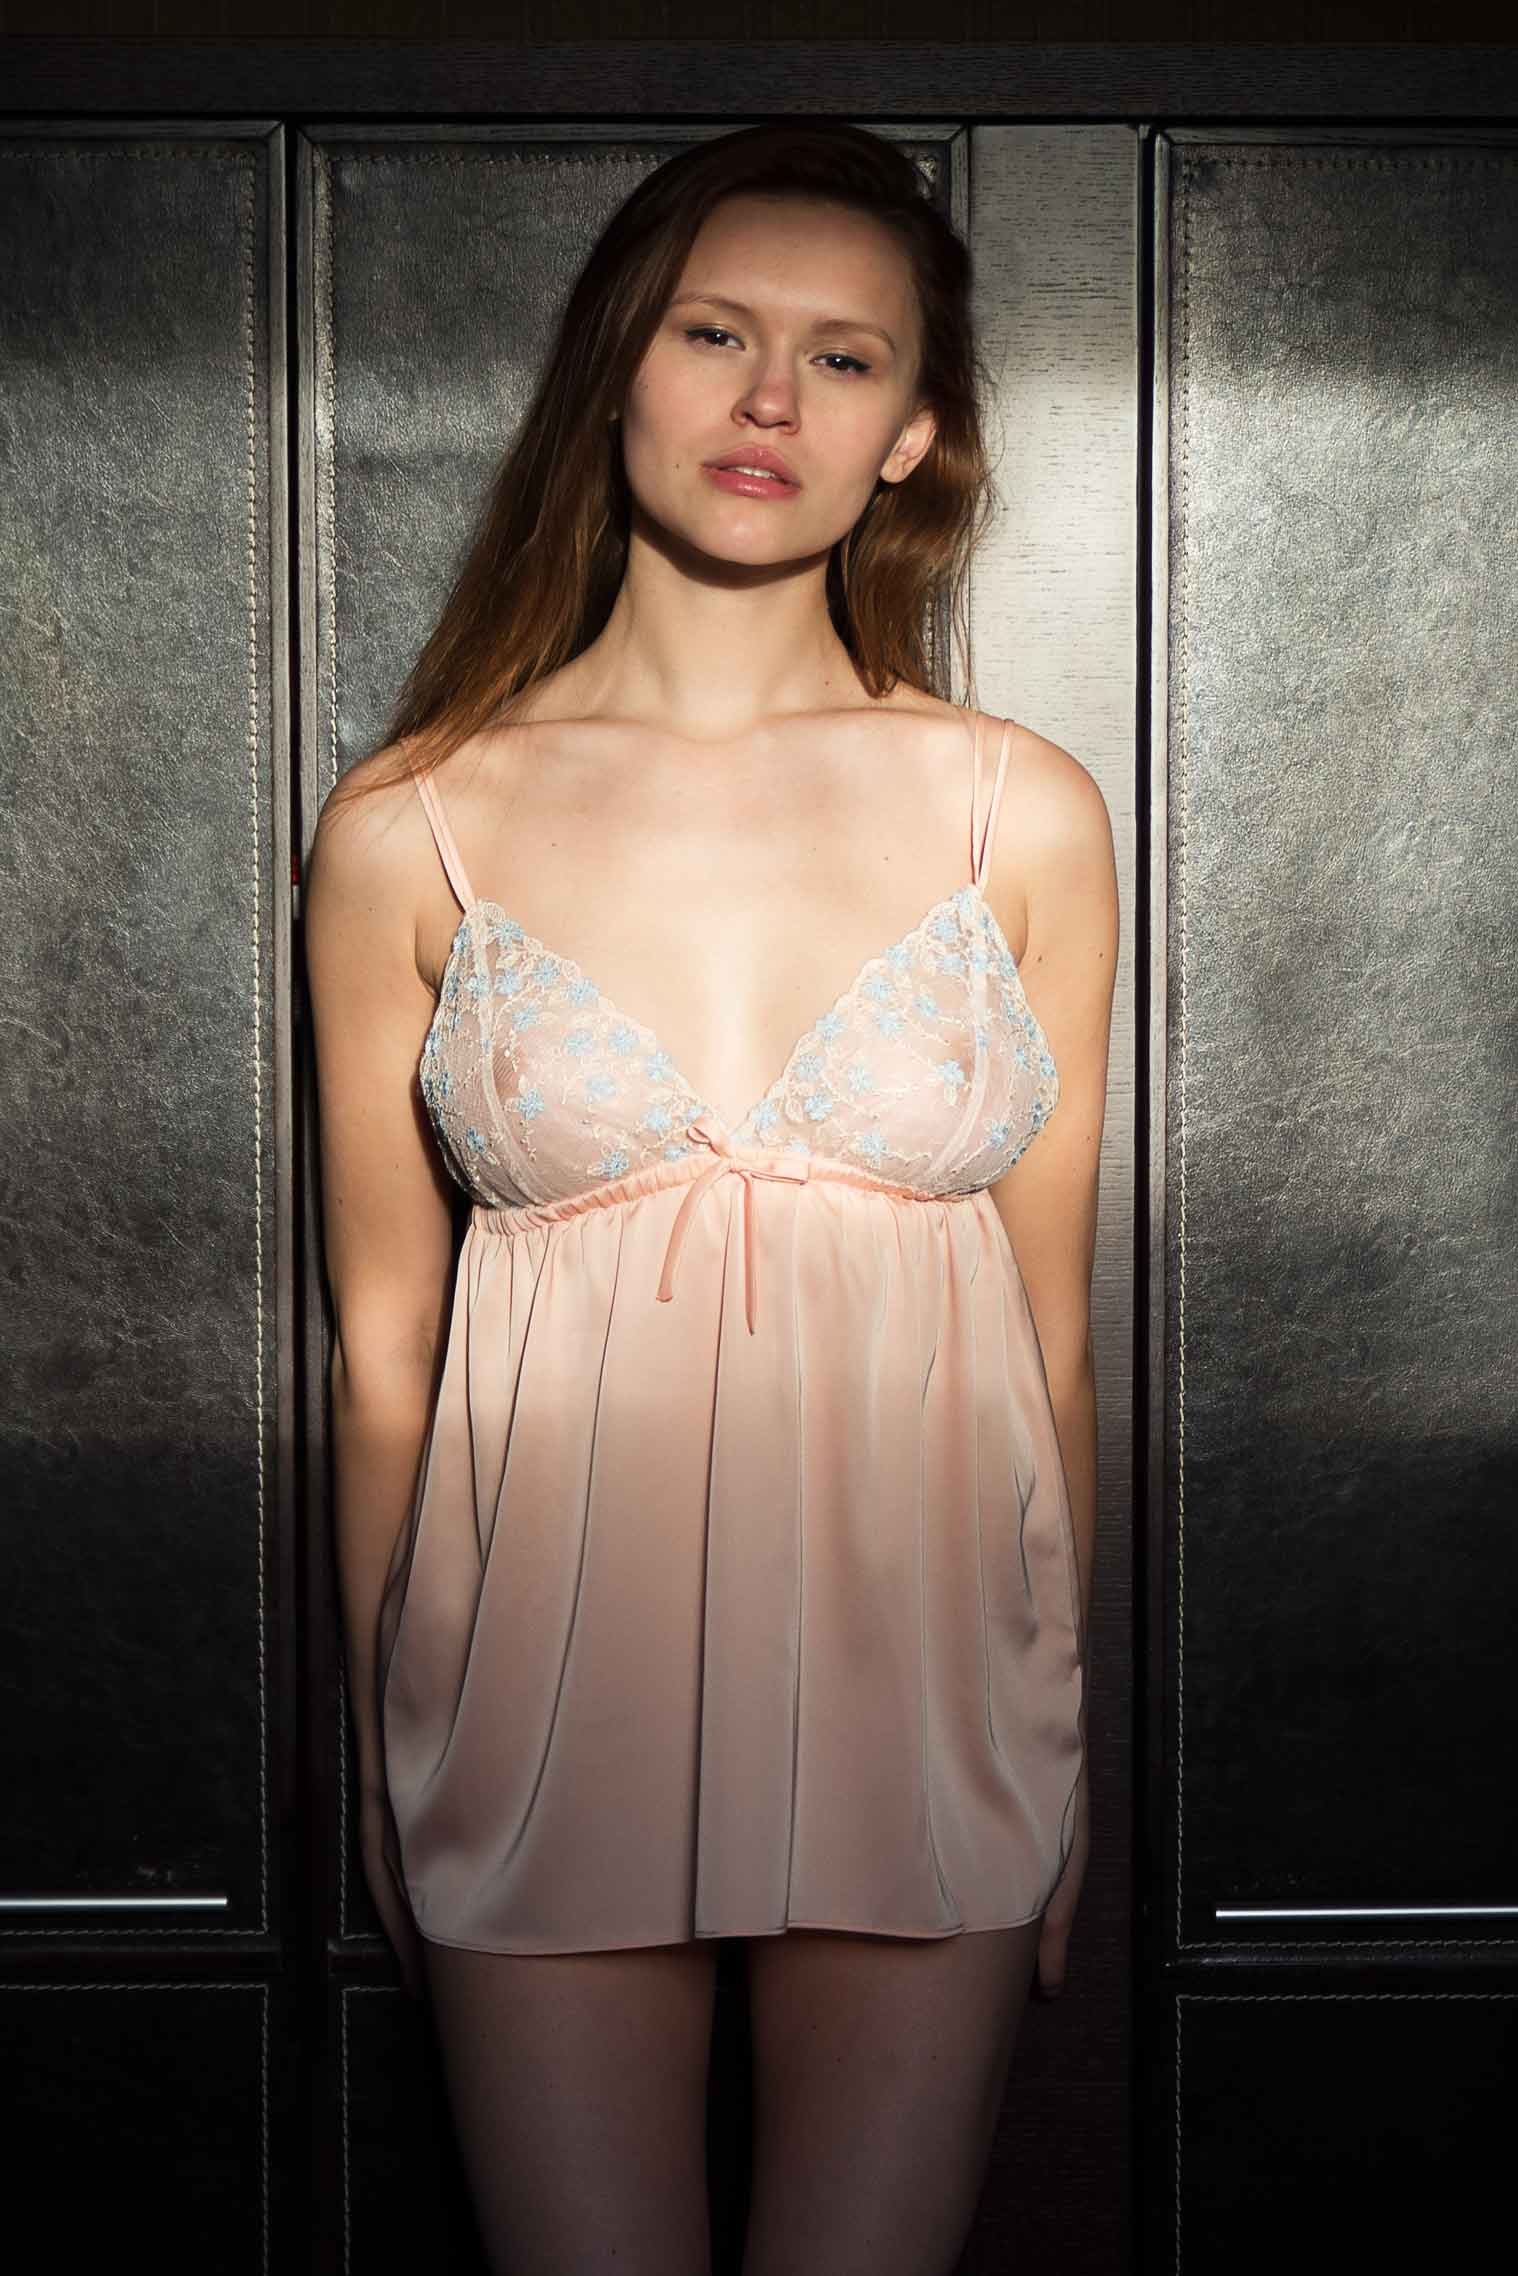 Nite gowns lingerie